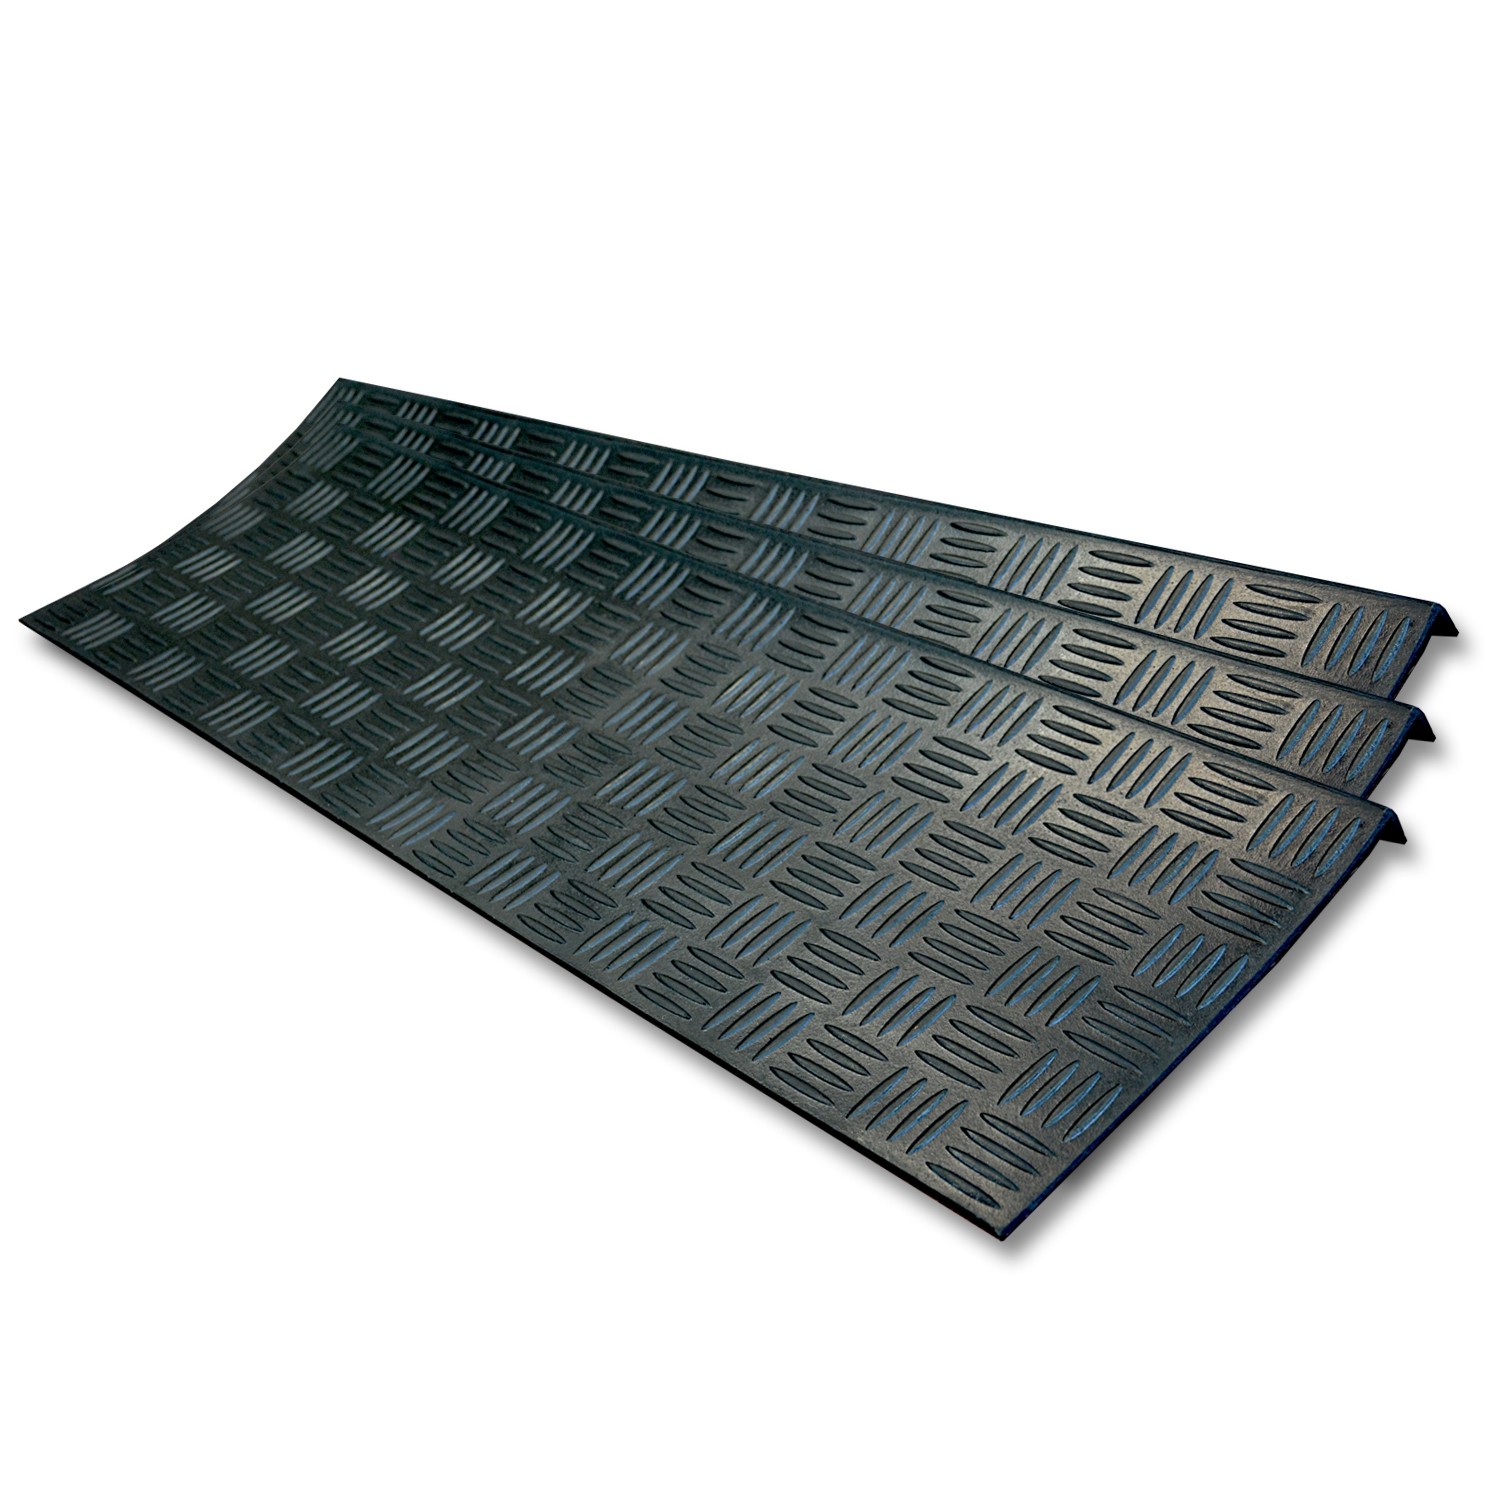 treads all weather outdoor staircase mats rubber step. Black Bedroom Furniture Sets. Home Design Ideas